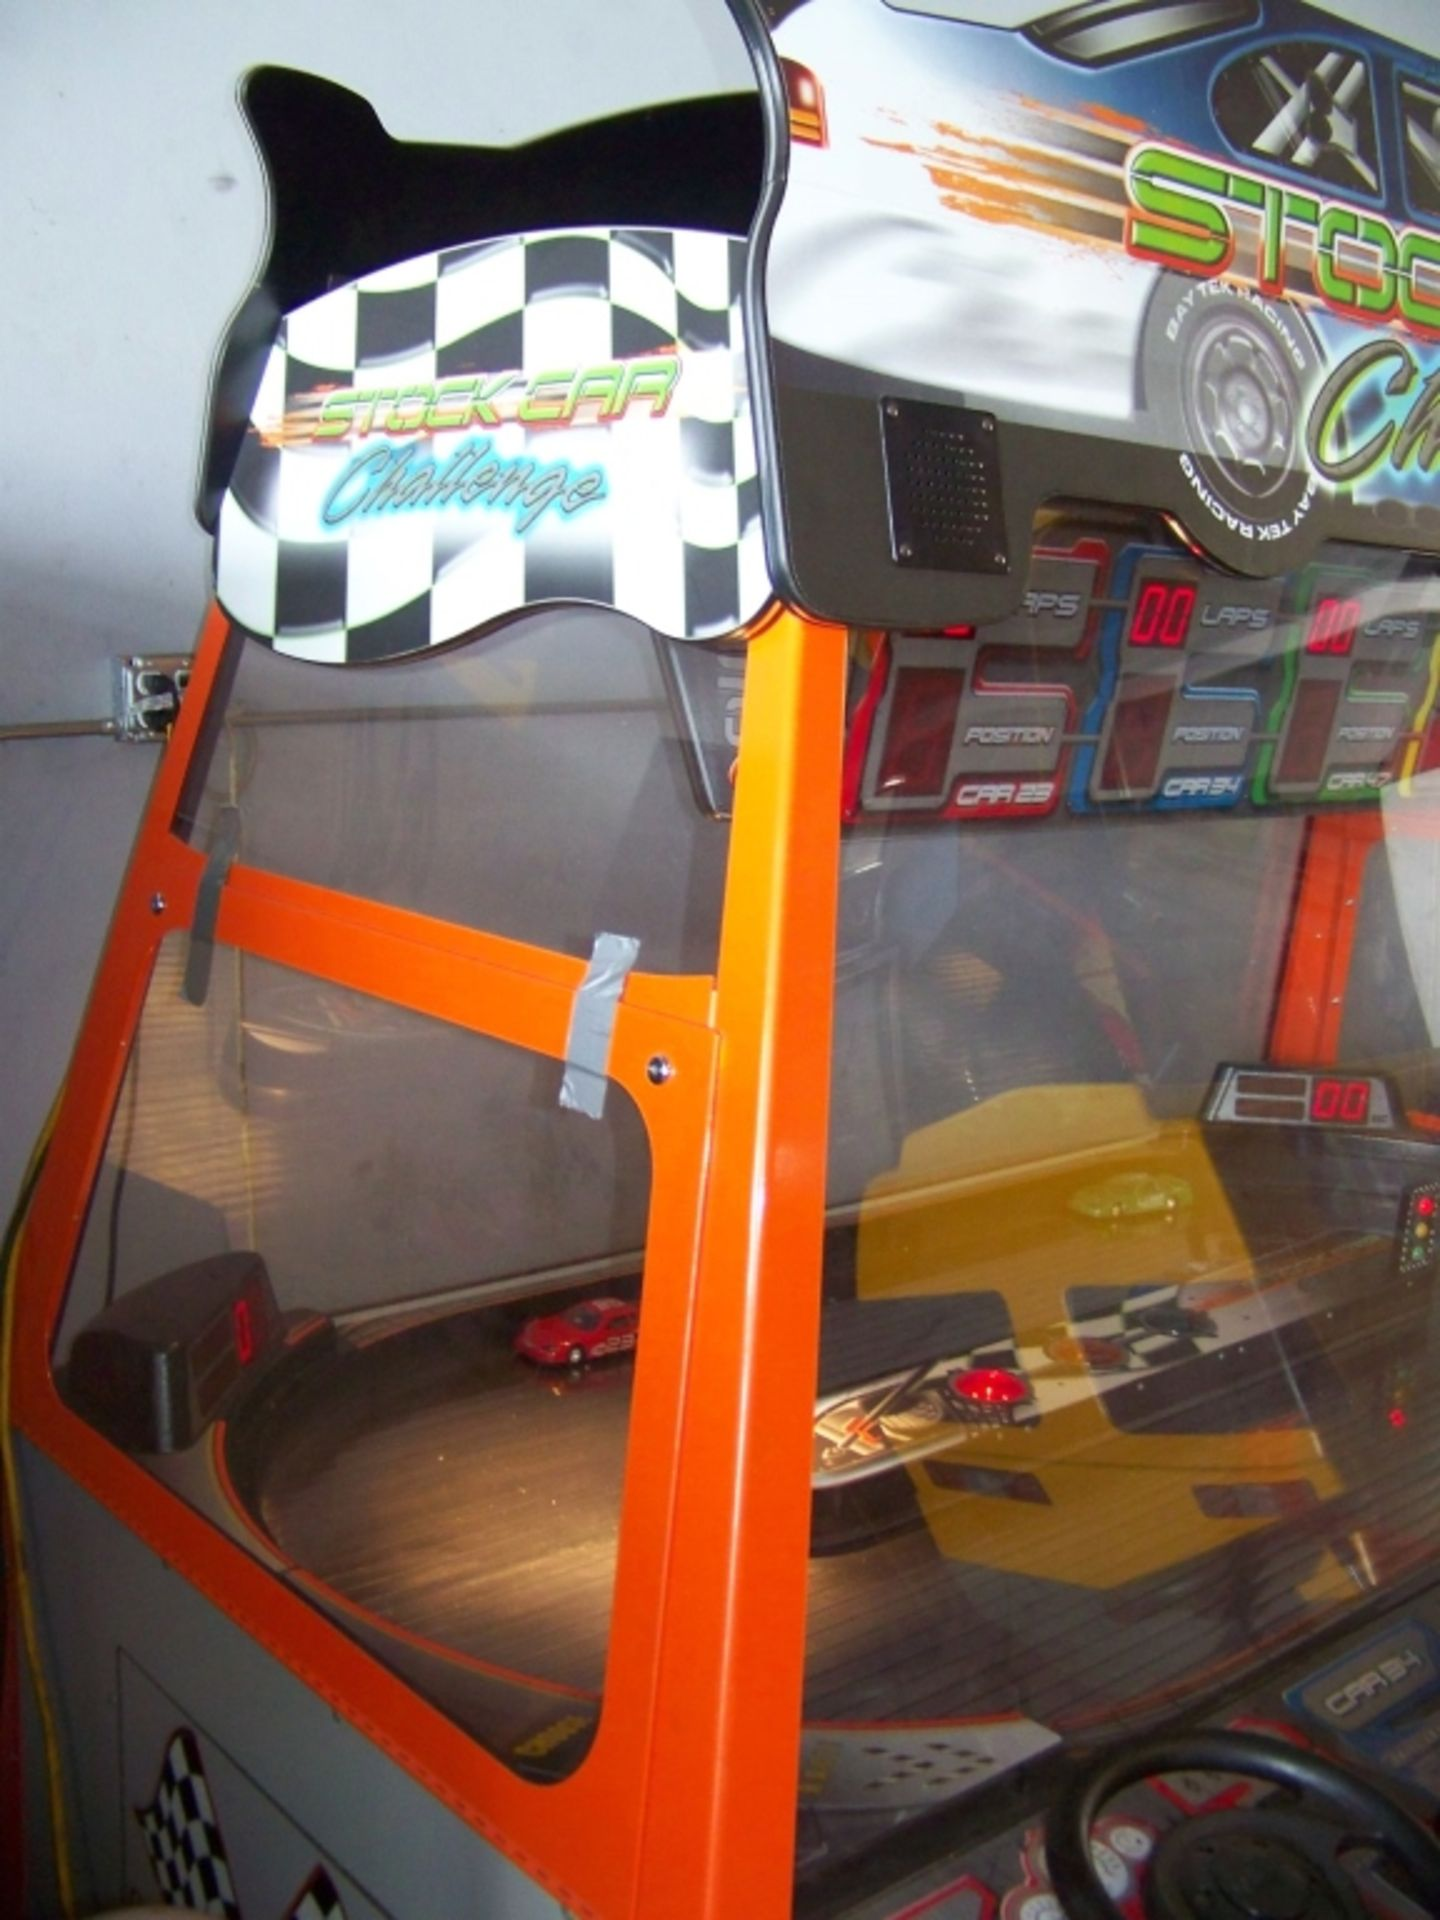 STOCK CAR CHALLENGE TICKET REDEMPTION GAME - Image 2 of 6